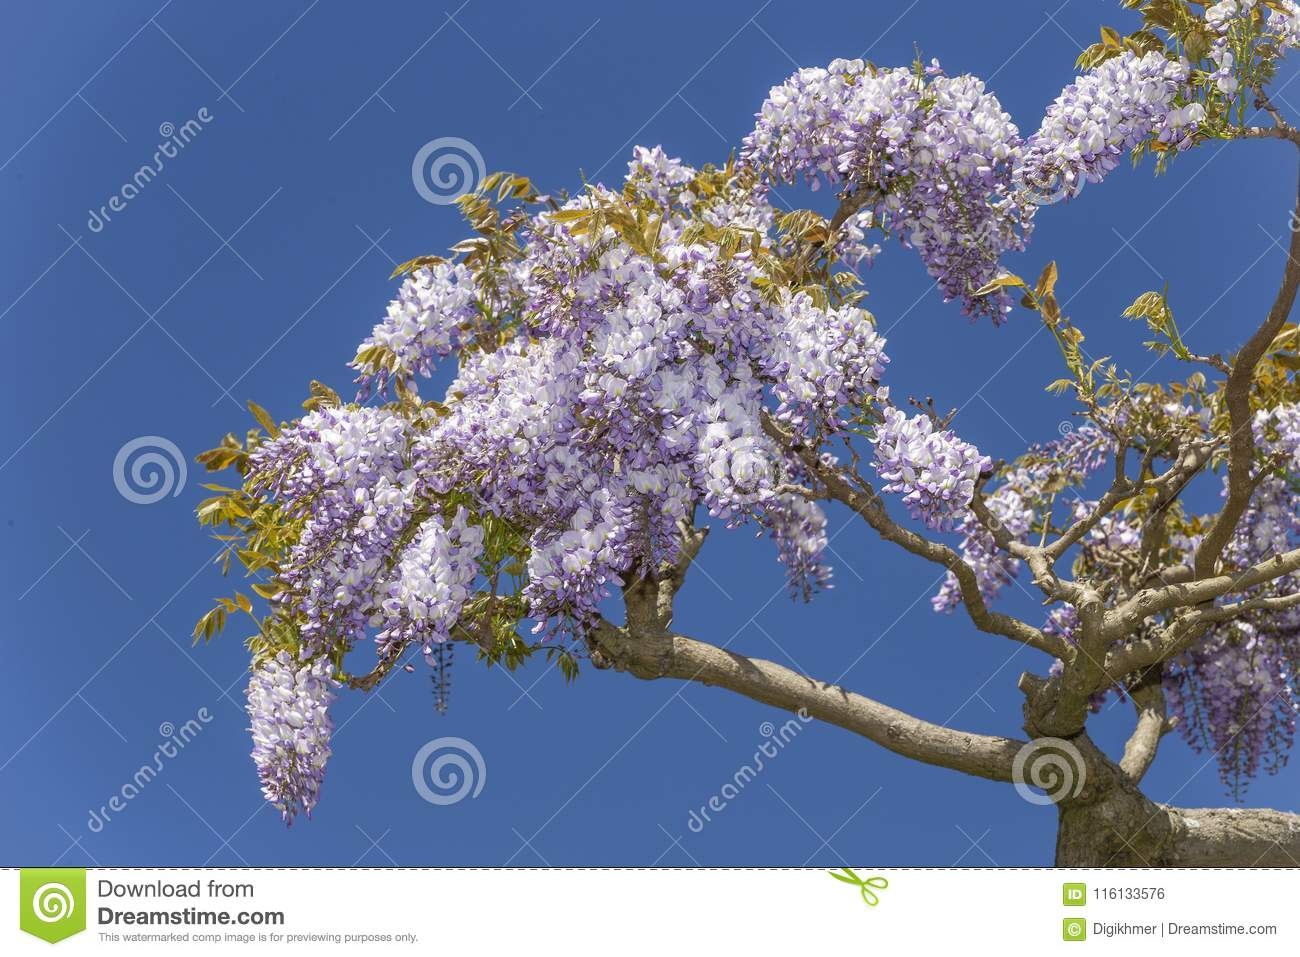 Wisteria blossoms flowers